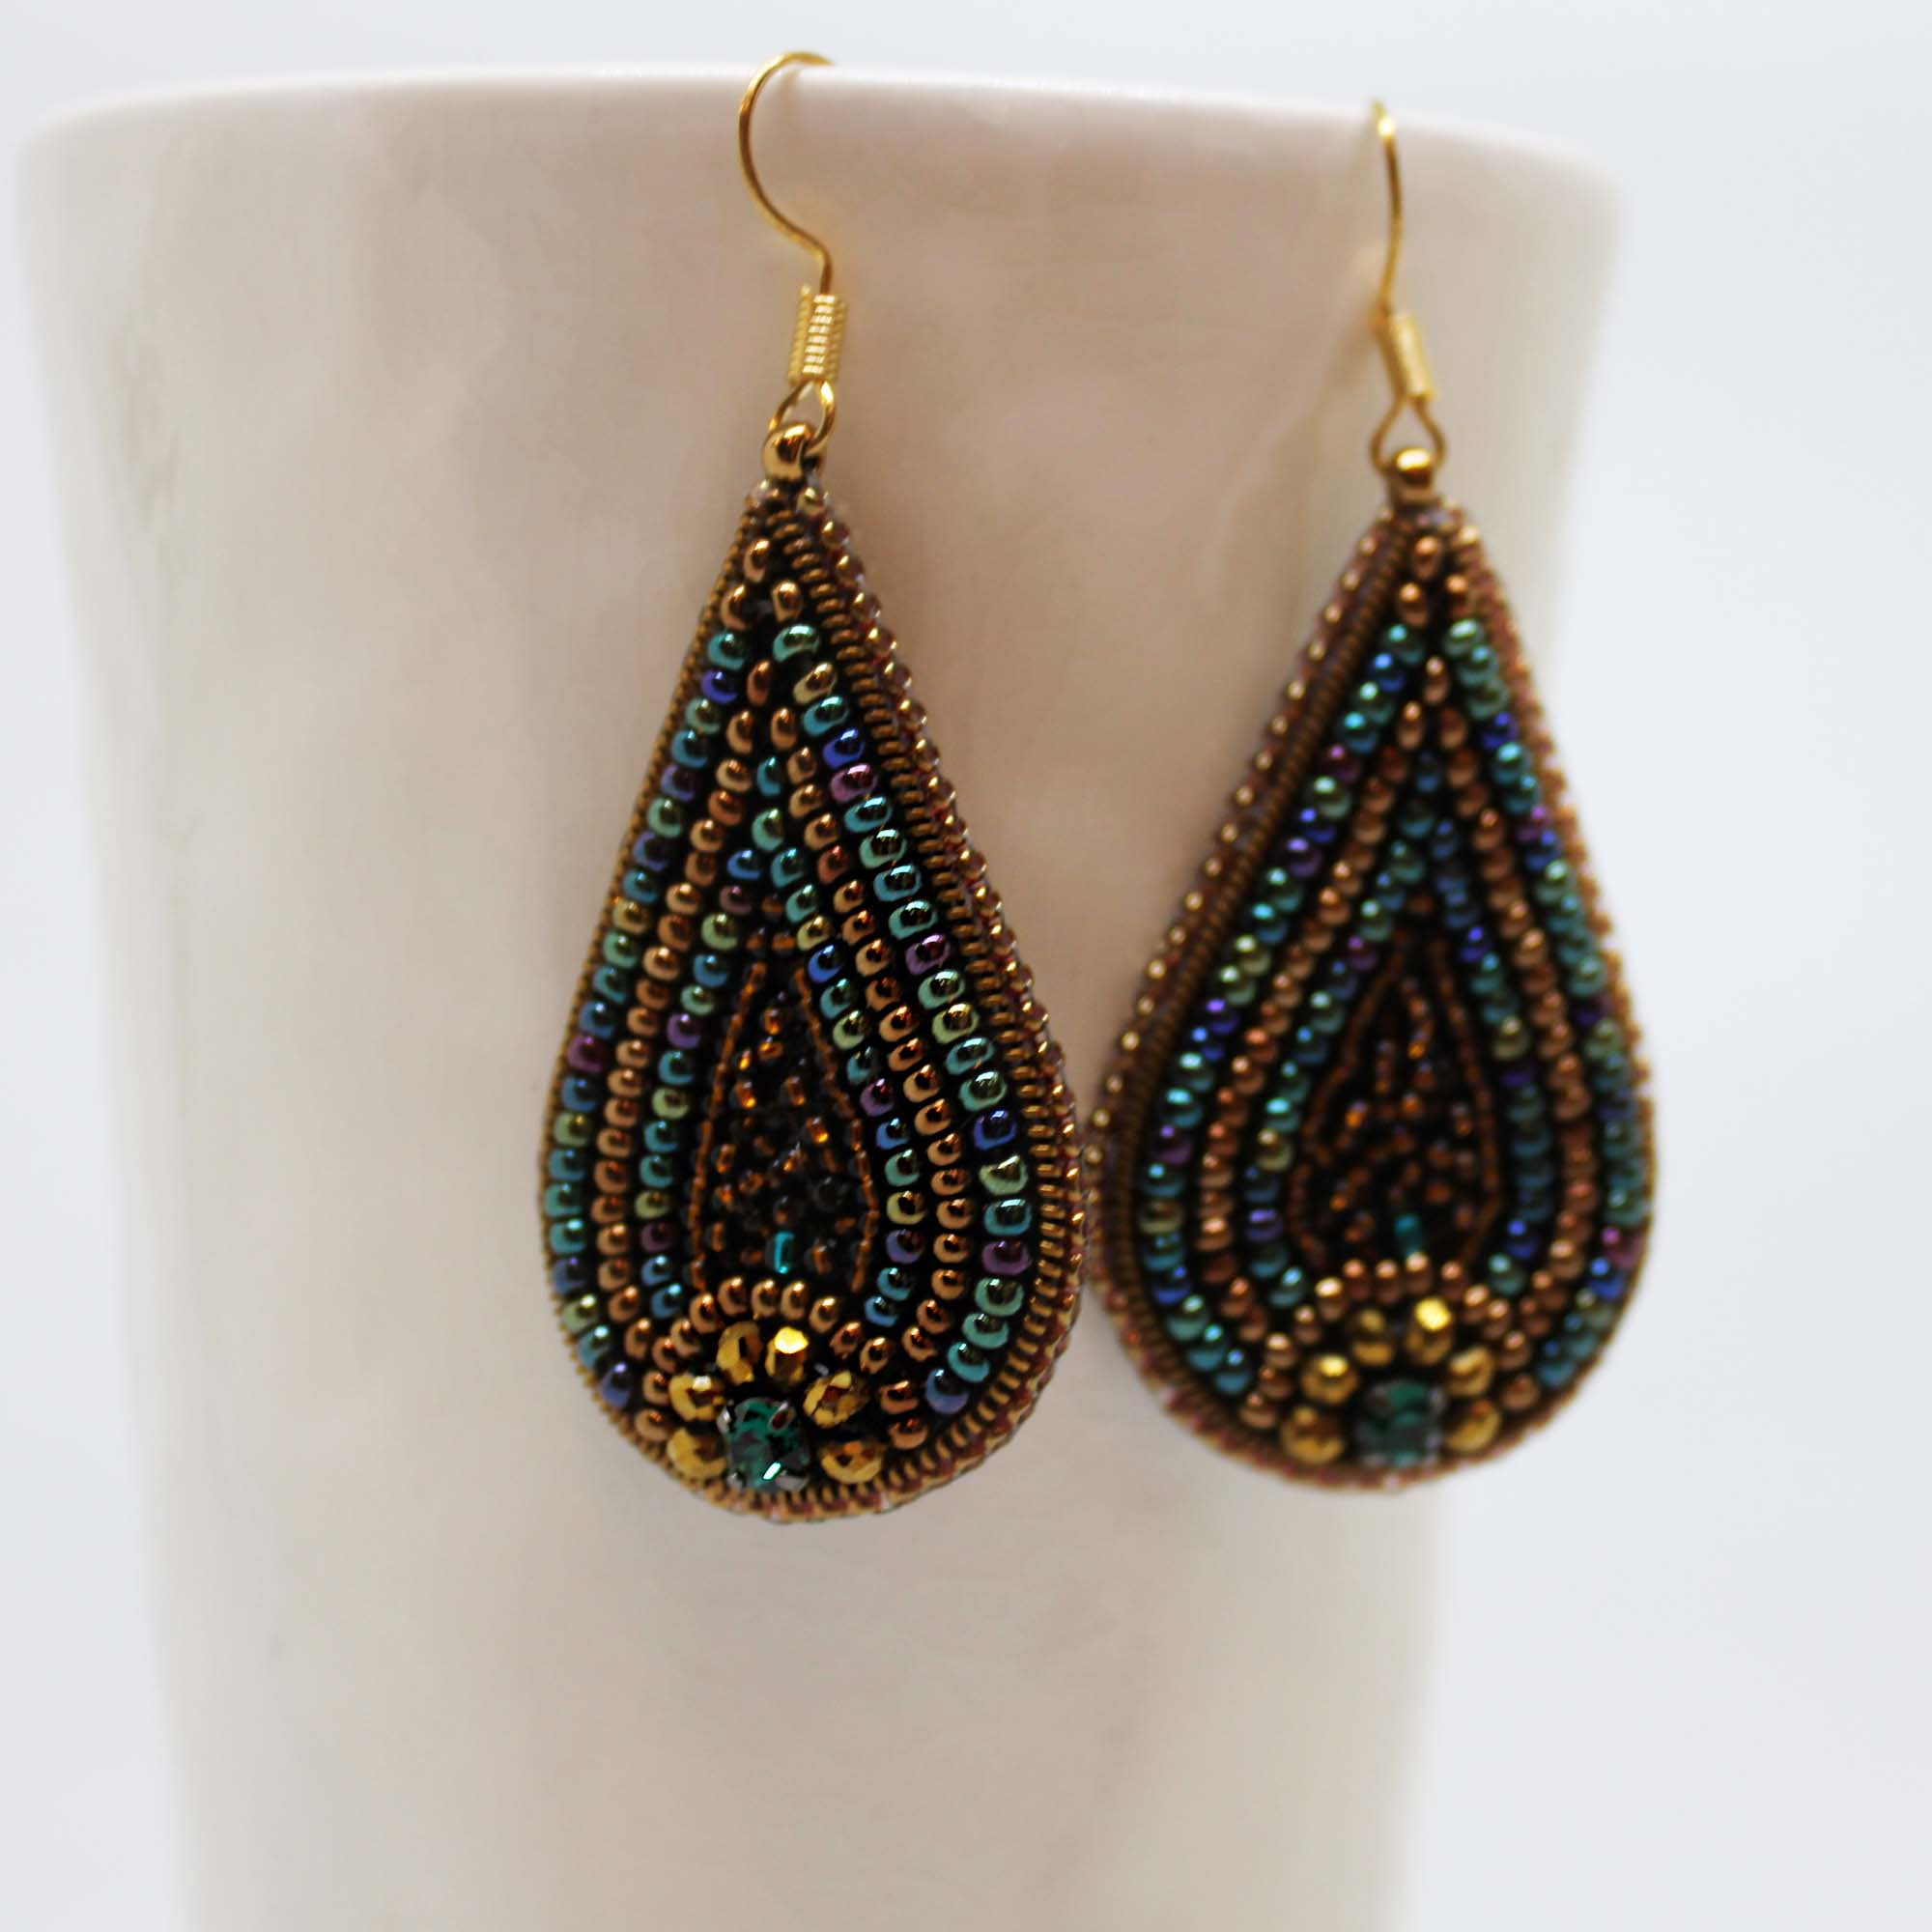 Brown bead earrings